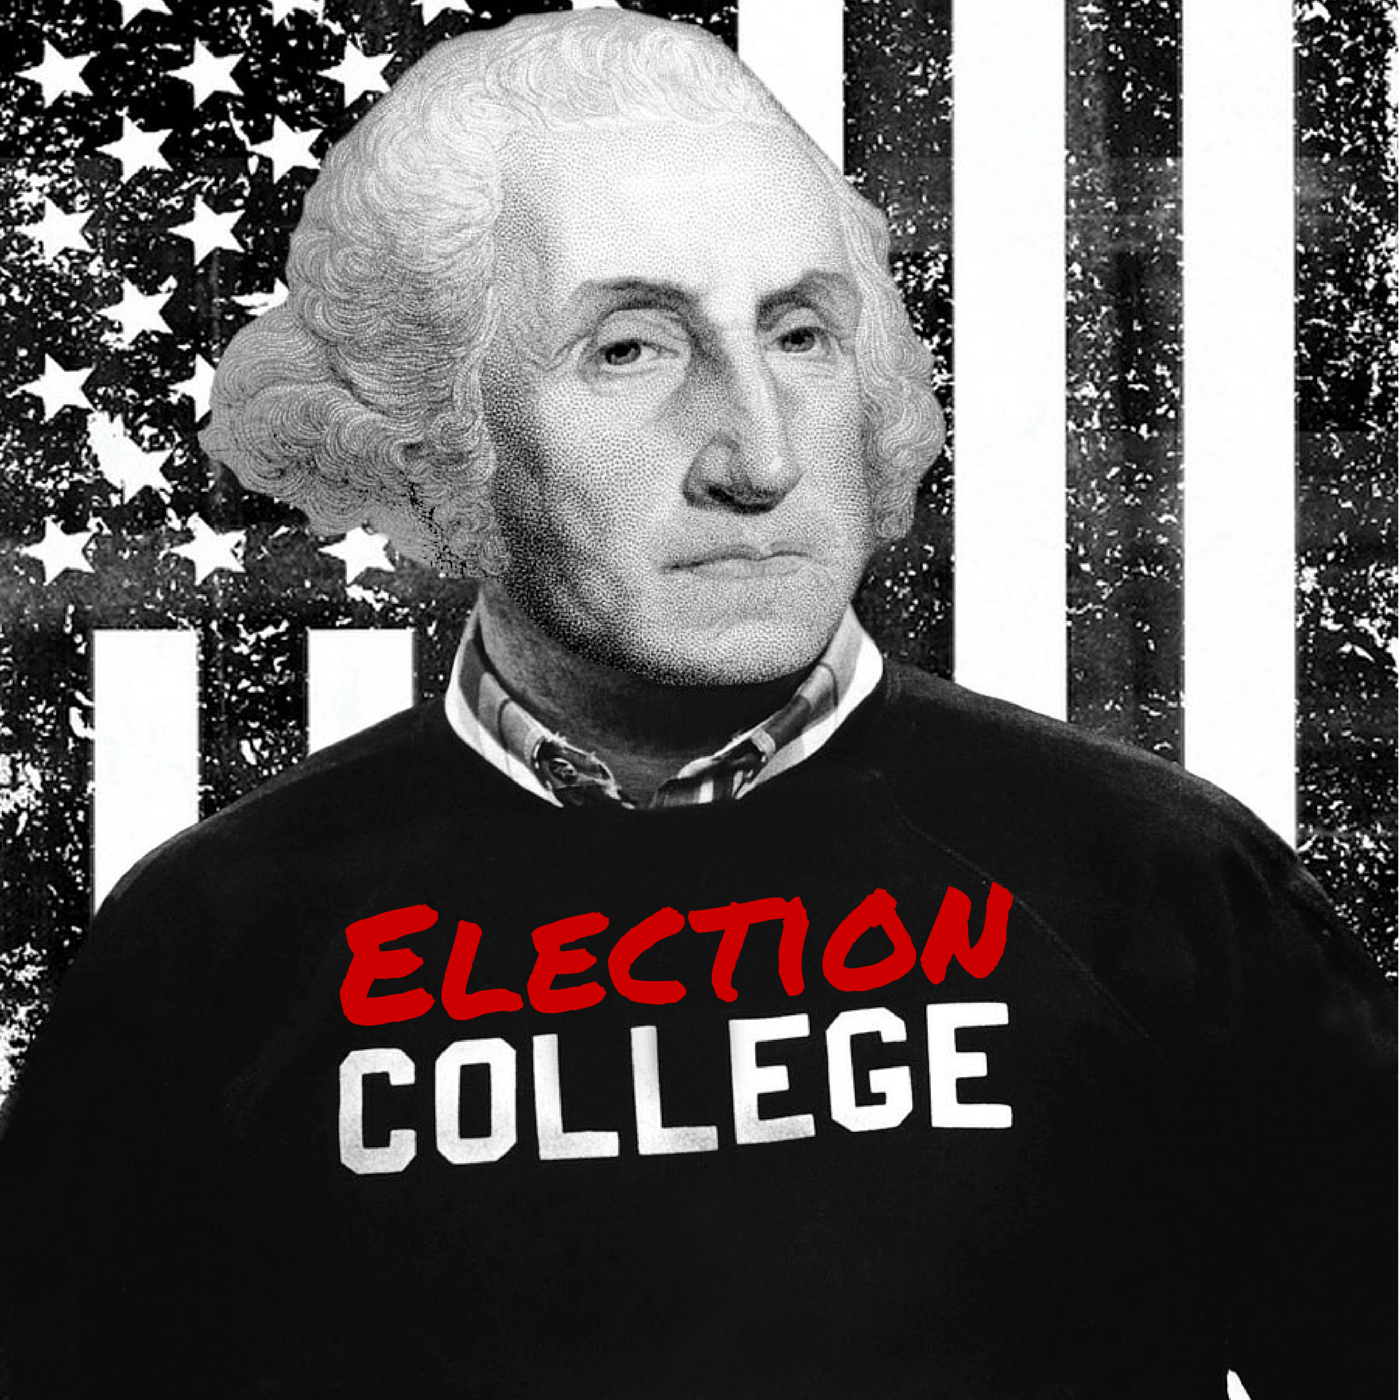 Elbridge Gerry - Part 1 | Episode #198 | Election College: United States Presidential Election History